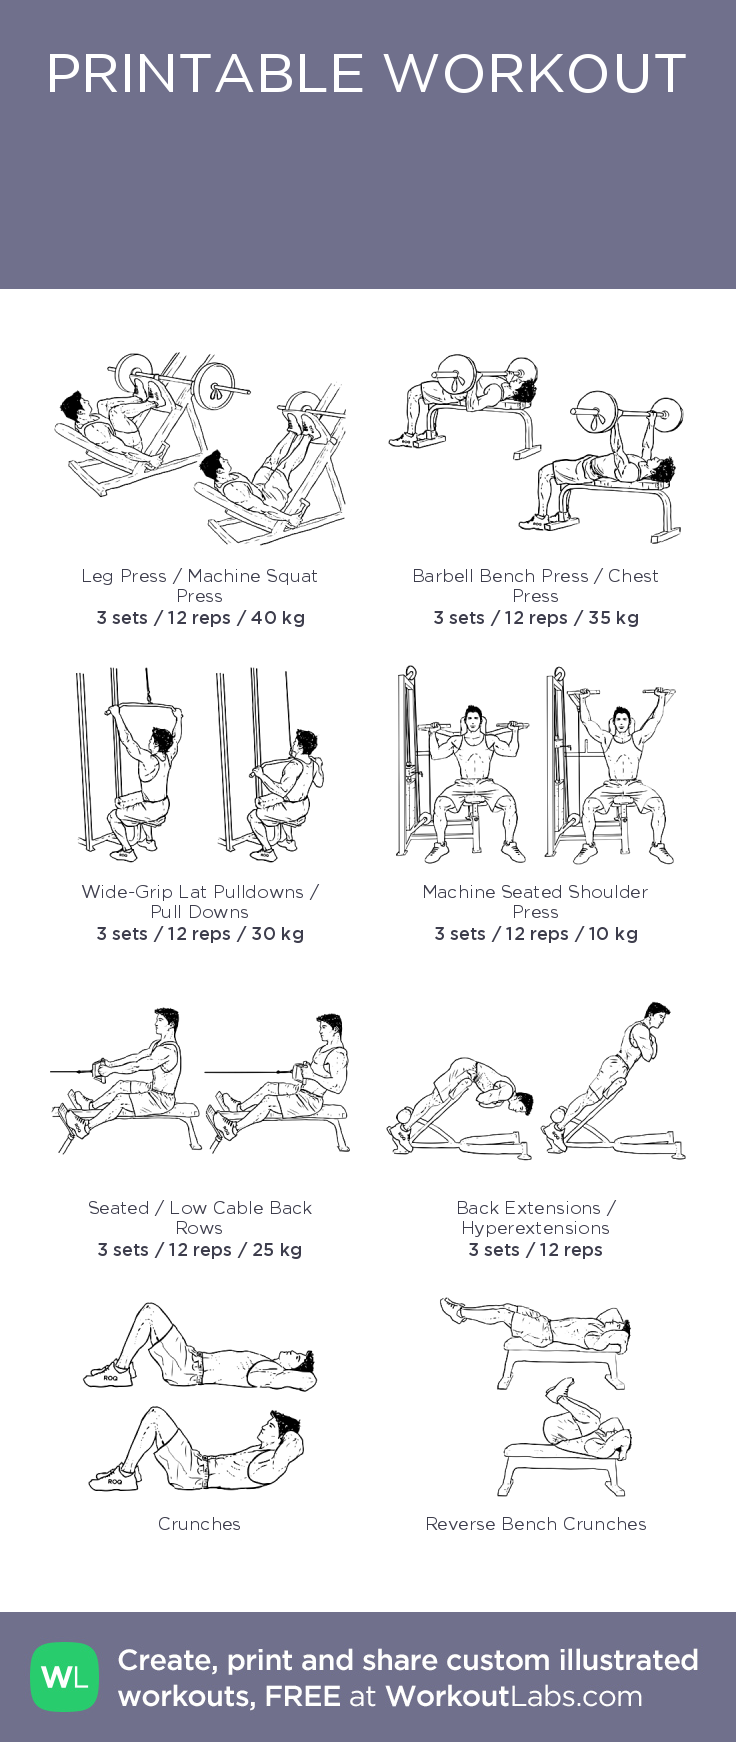 Ознайомче тренування –illustrated exercise plan created at WorkoutLabs.com • Click for a printable PDF and to build your own #customworkout